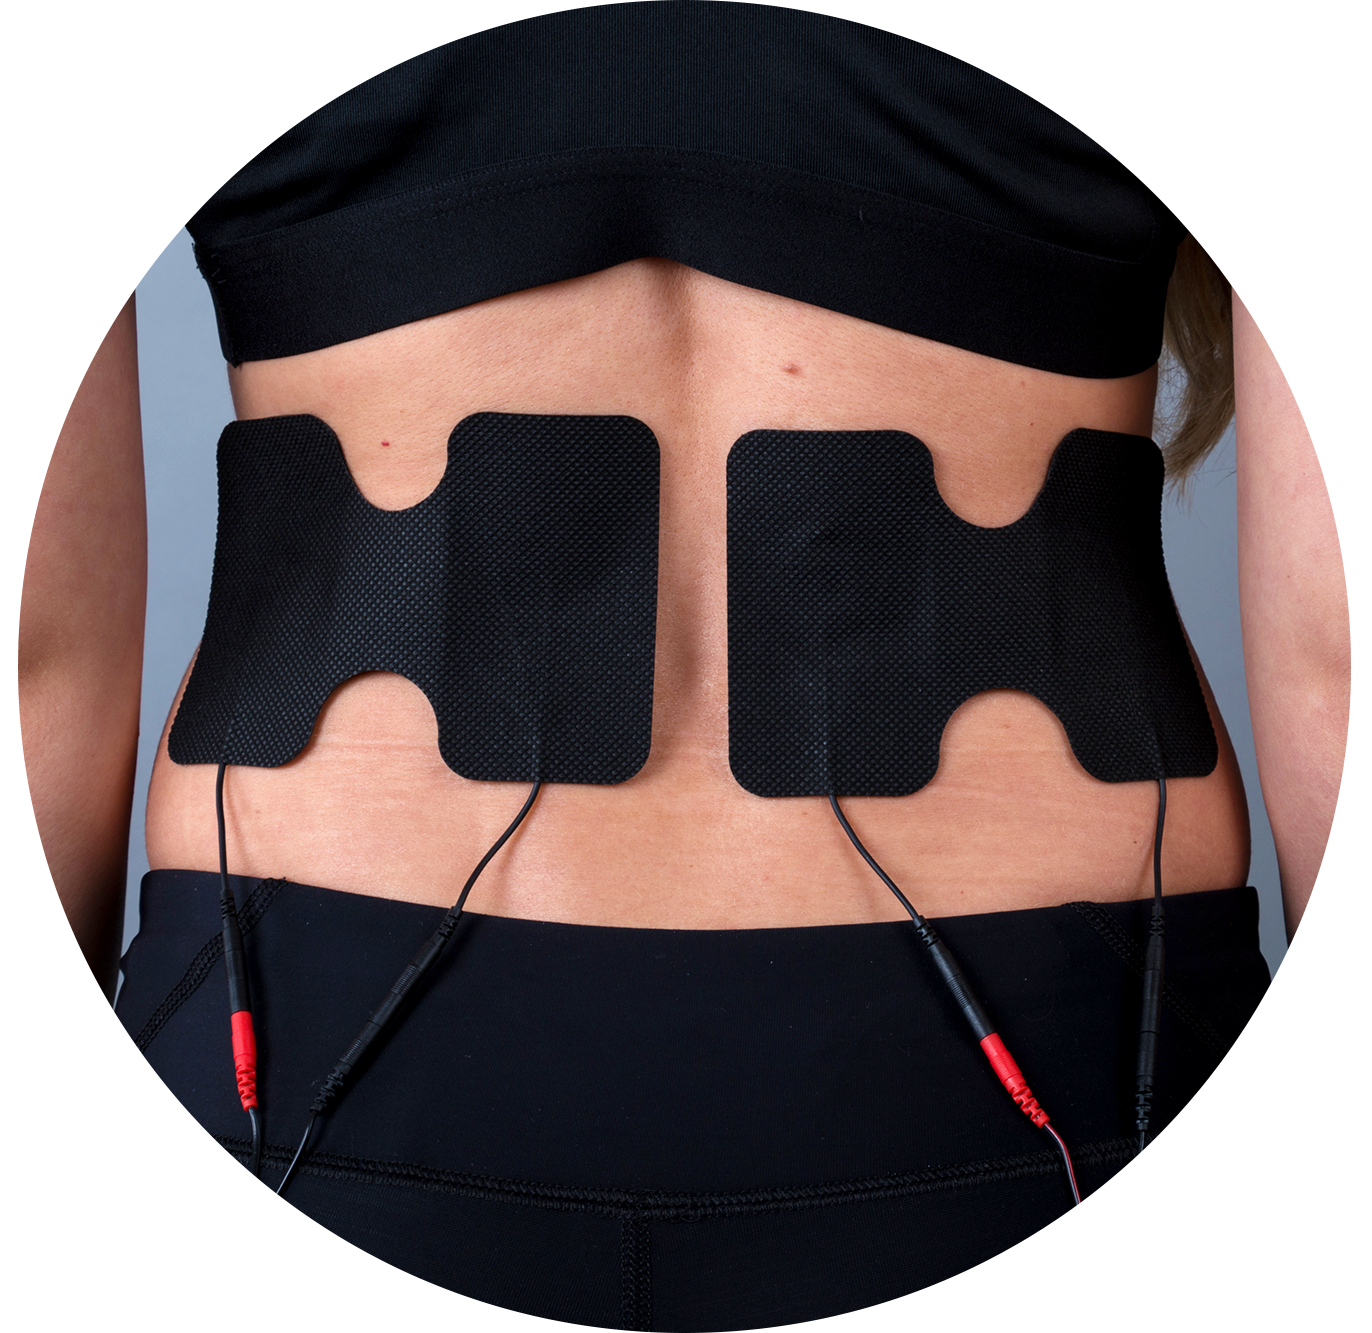 Lower back TENS pad placement